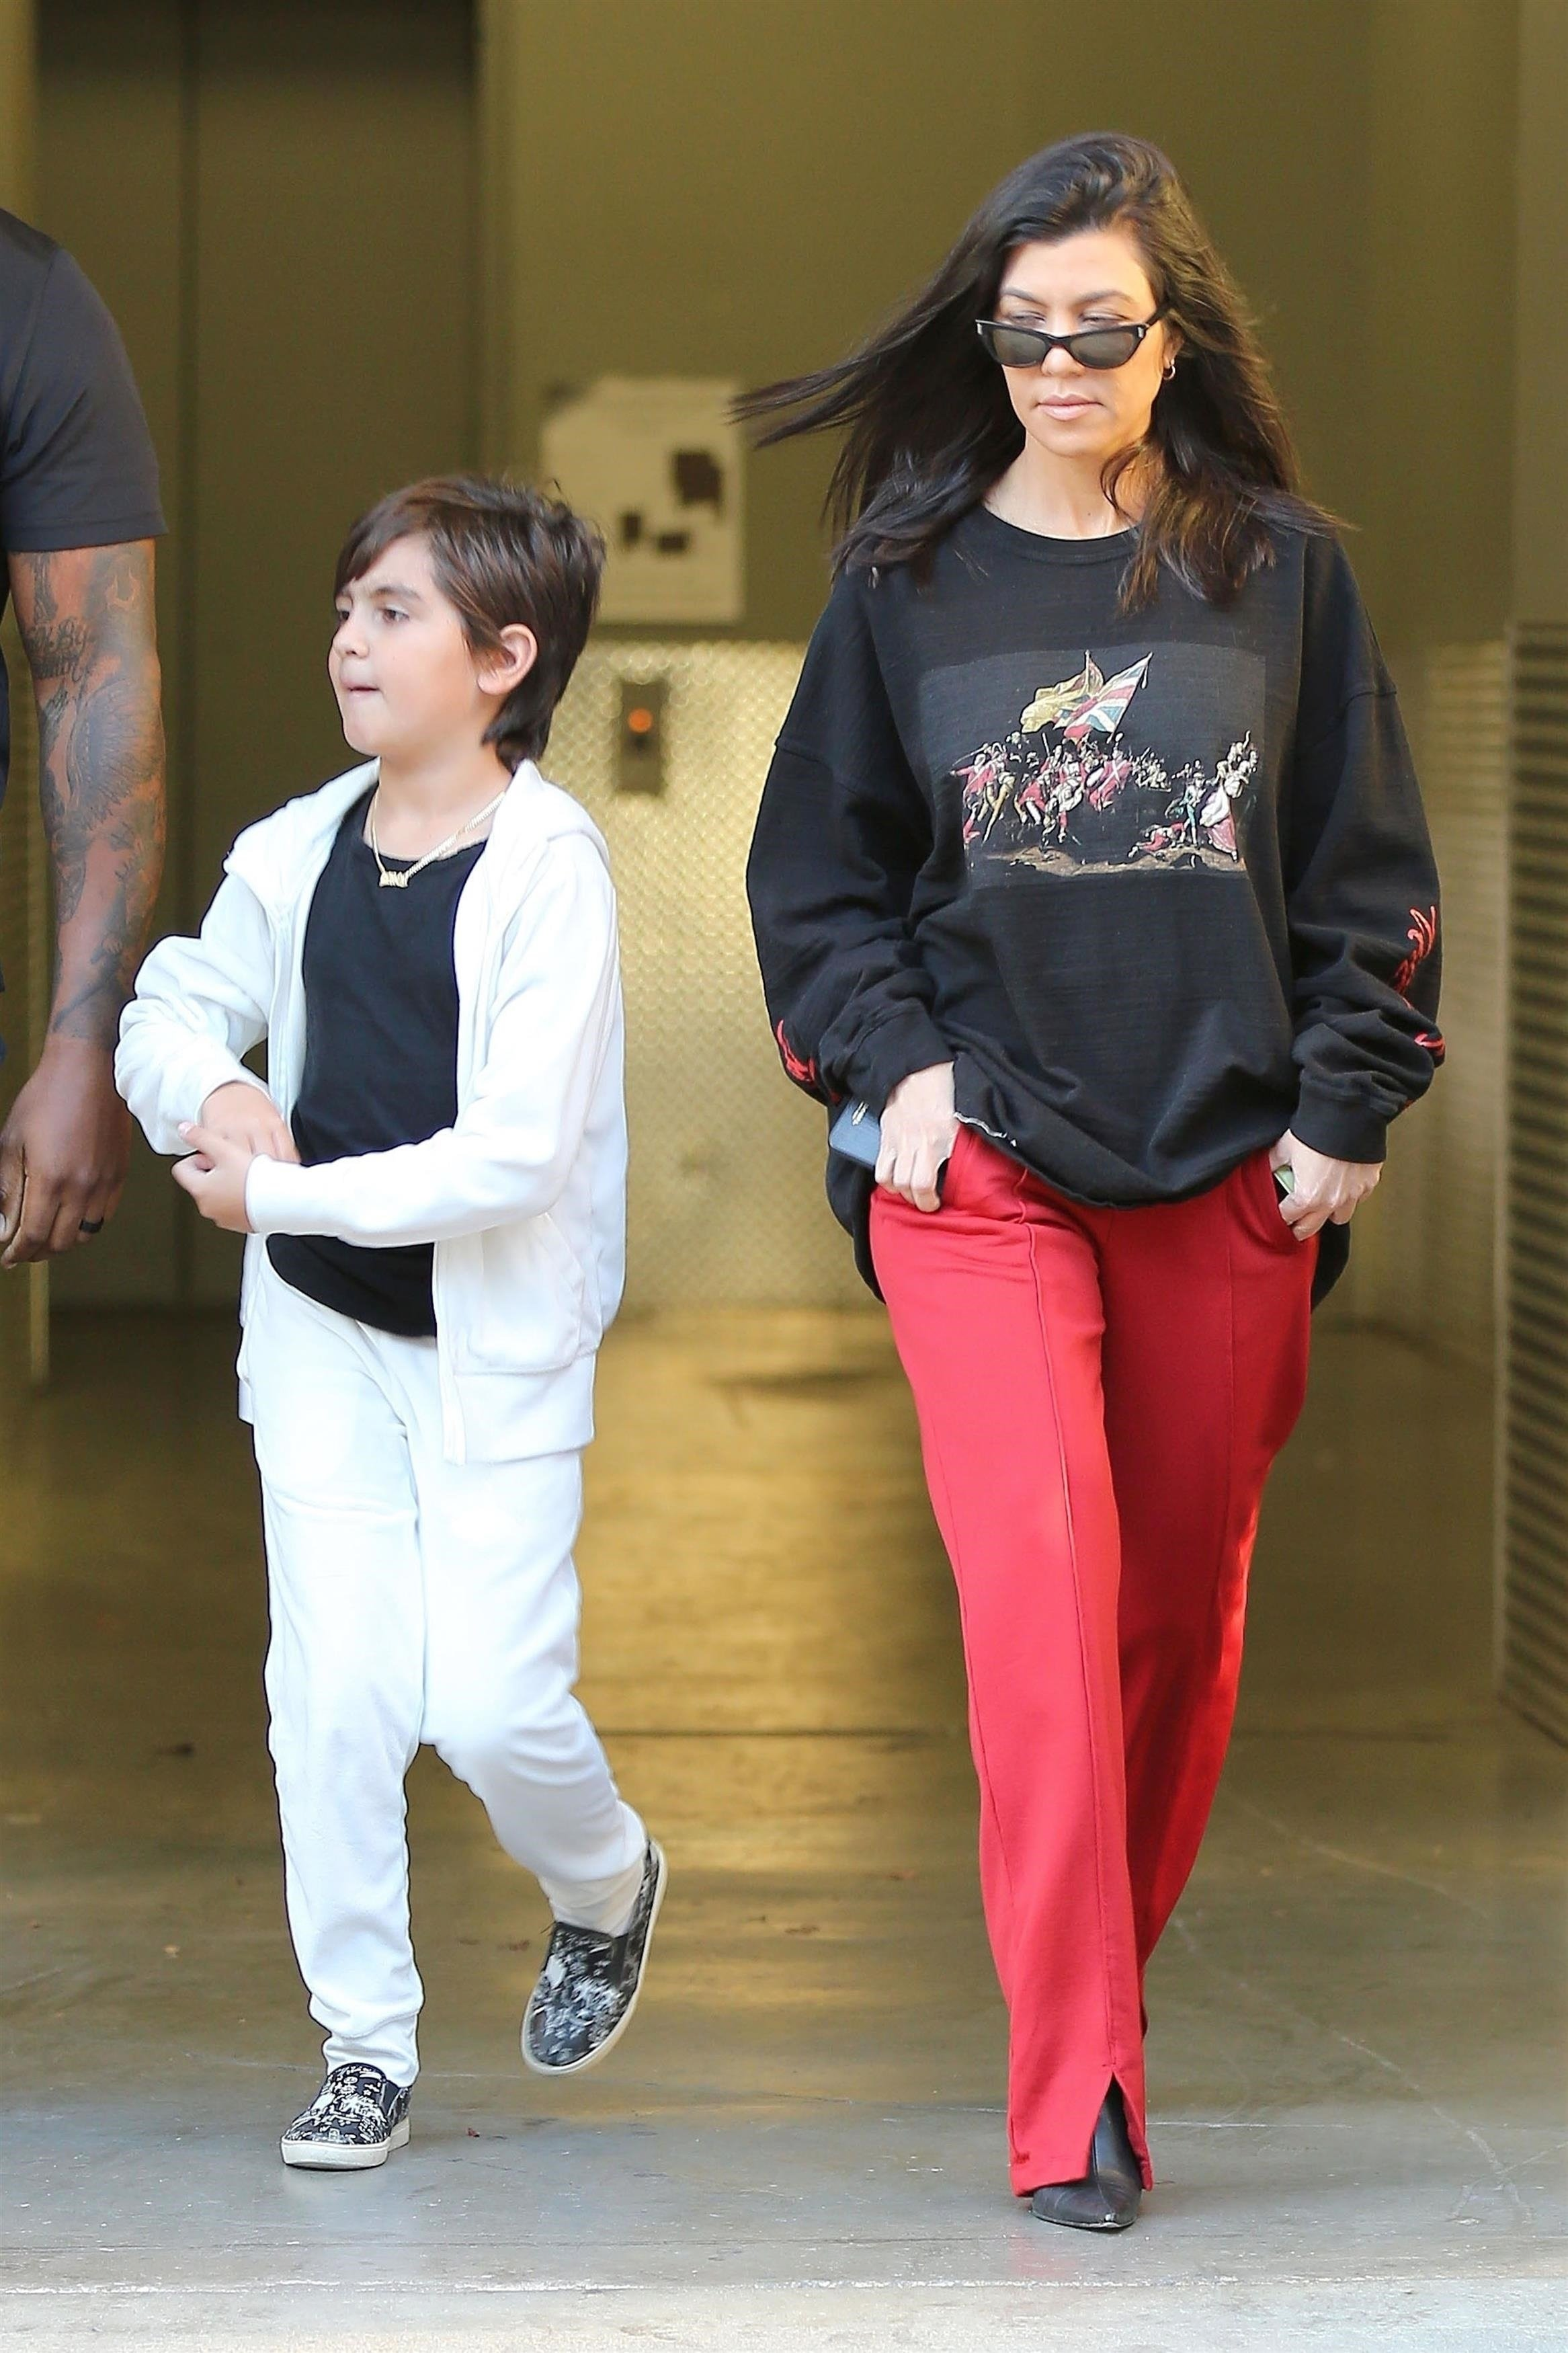 Calabasas, CA  - Kourtney Kardashian heads into her son Mason's weekly art class and both fight the windy conditions on their way in.  Pictured: Kourtney Kardashian, Mason Disick  BACKGRID USA 21 FEBRUARY 2018, Image: 363958745, License: Rights-managed, Restrictions: , Model Release: no, Credit line: Profimedia, AKM-GSI